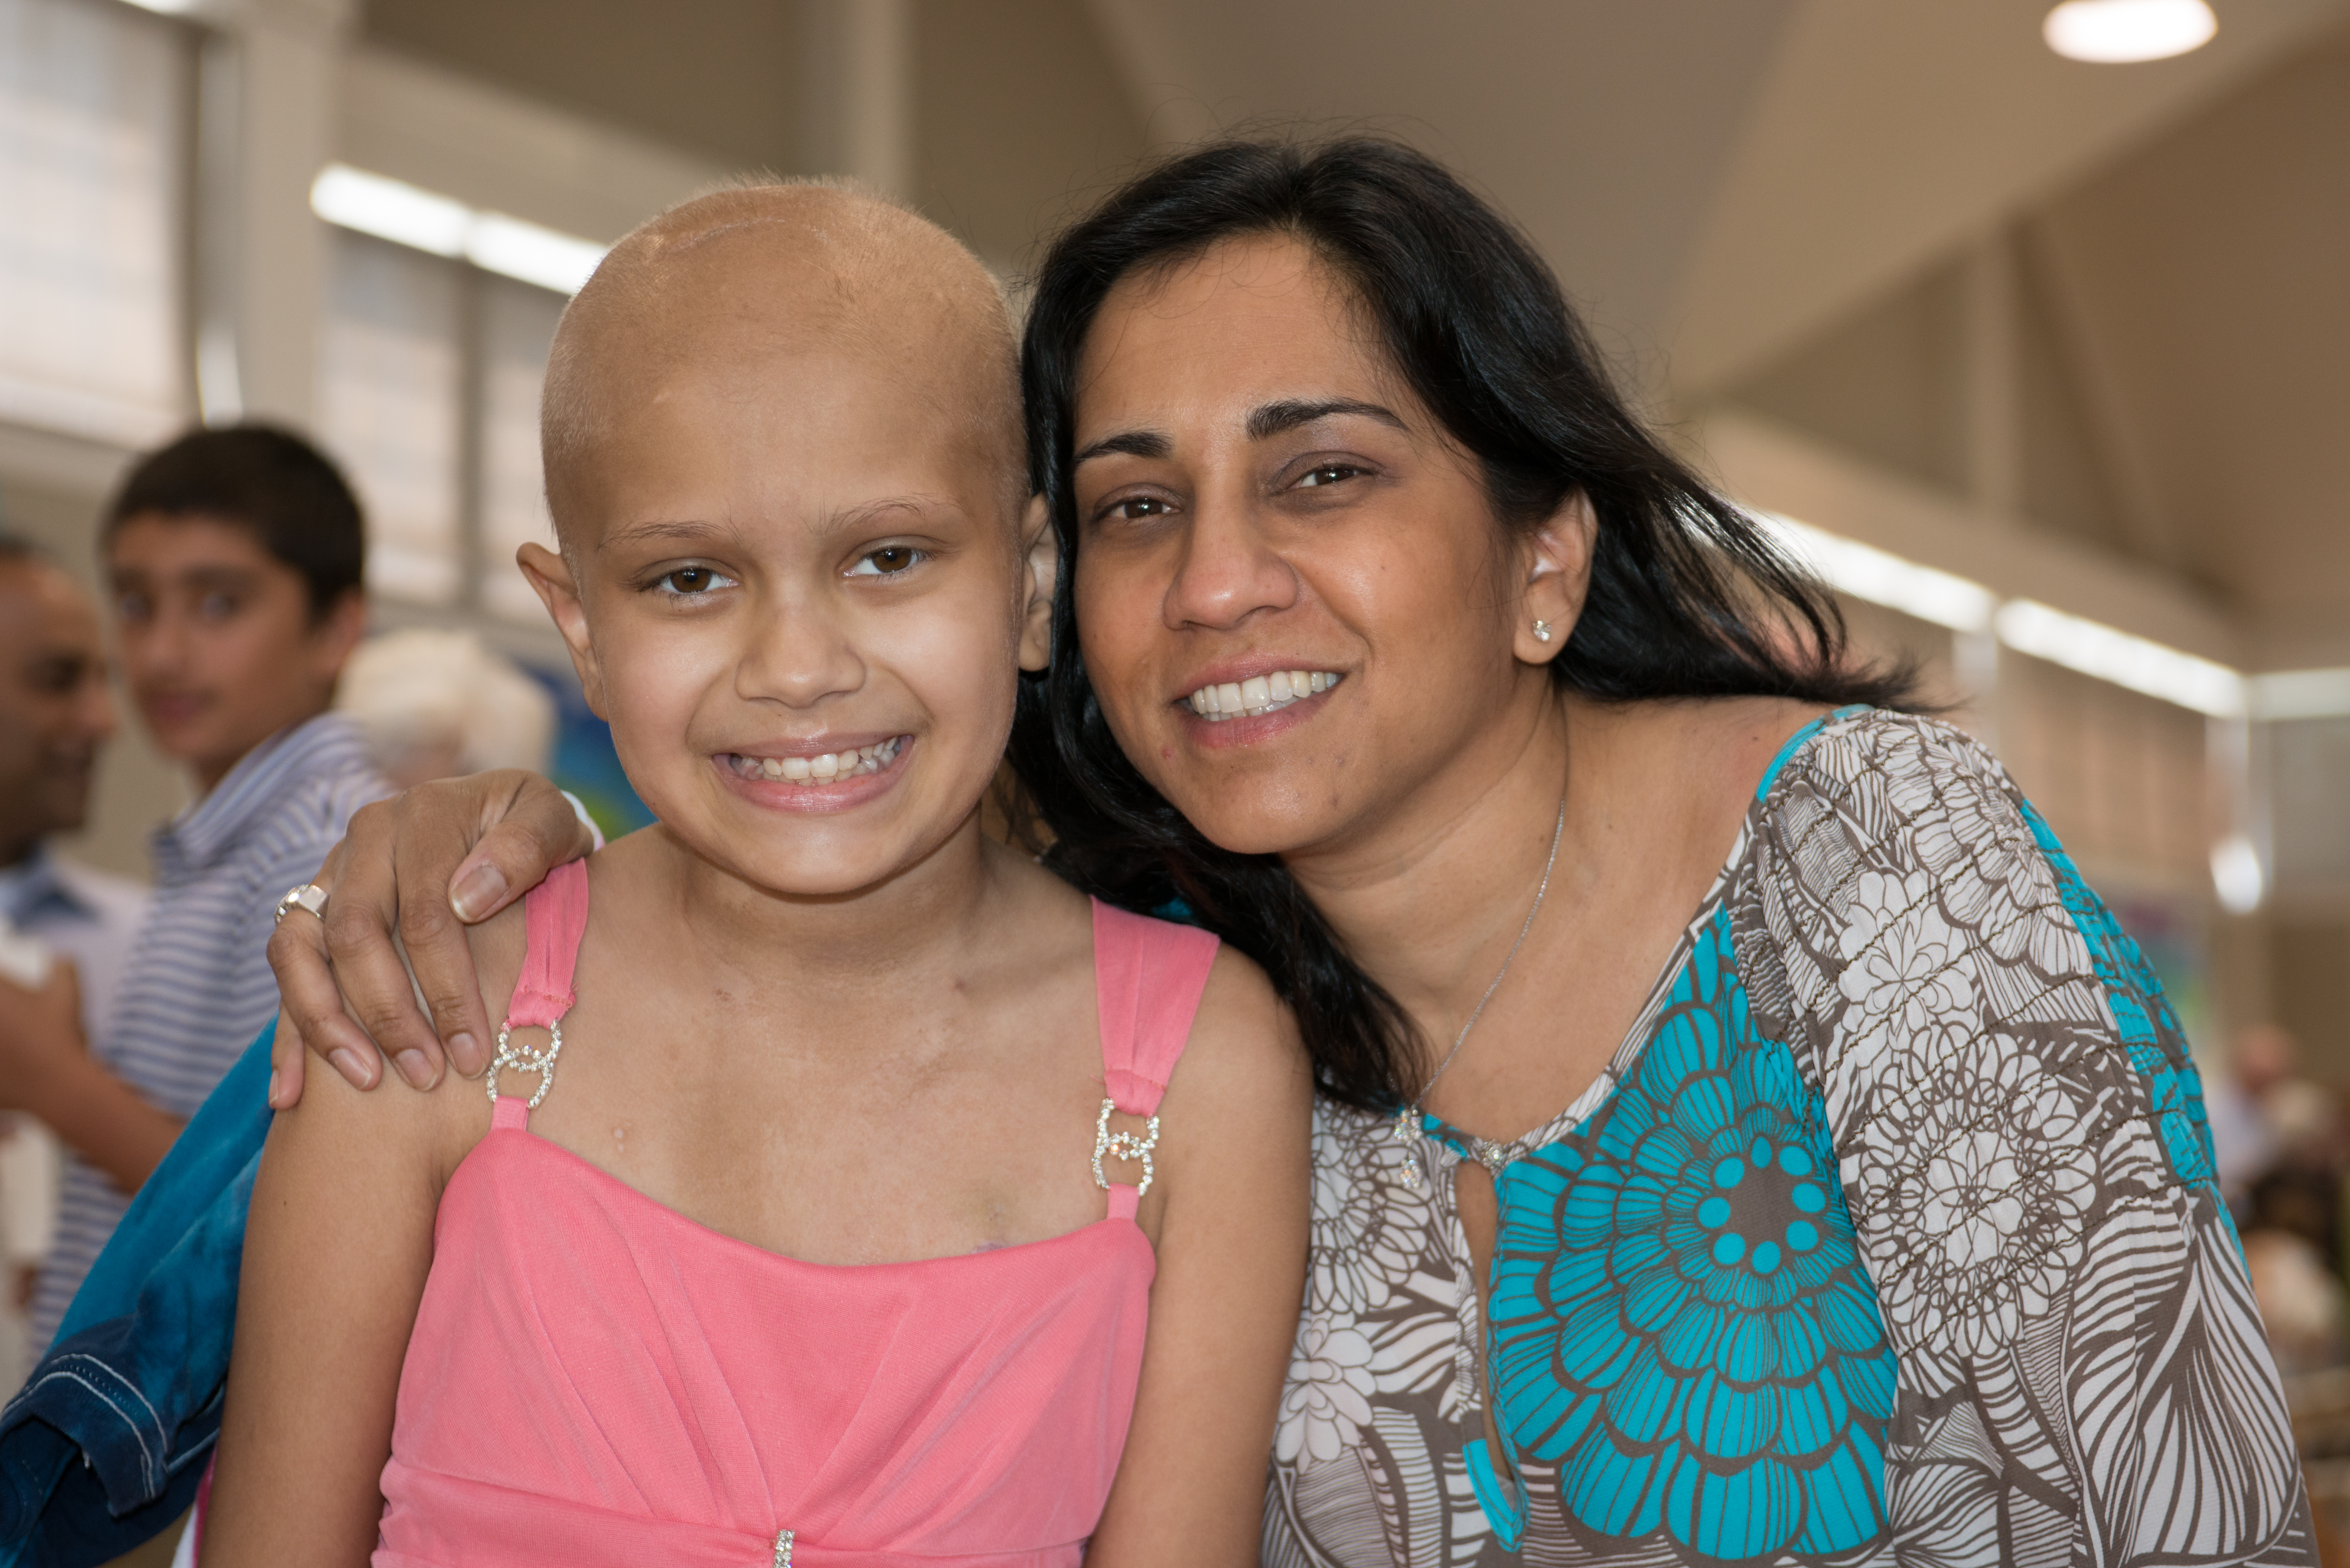 Silver dreams marisol - Mother Creates Mustard Challenge After Losing Daughter To Cancer Wgrz Com